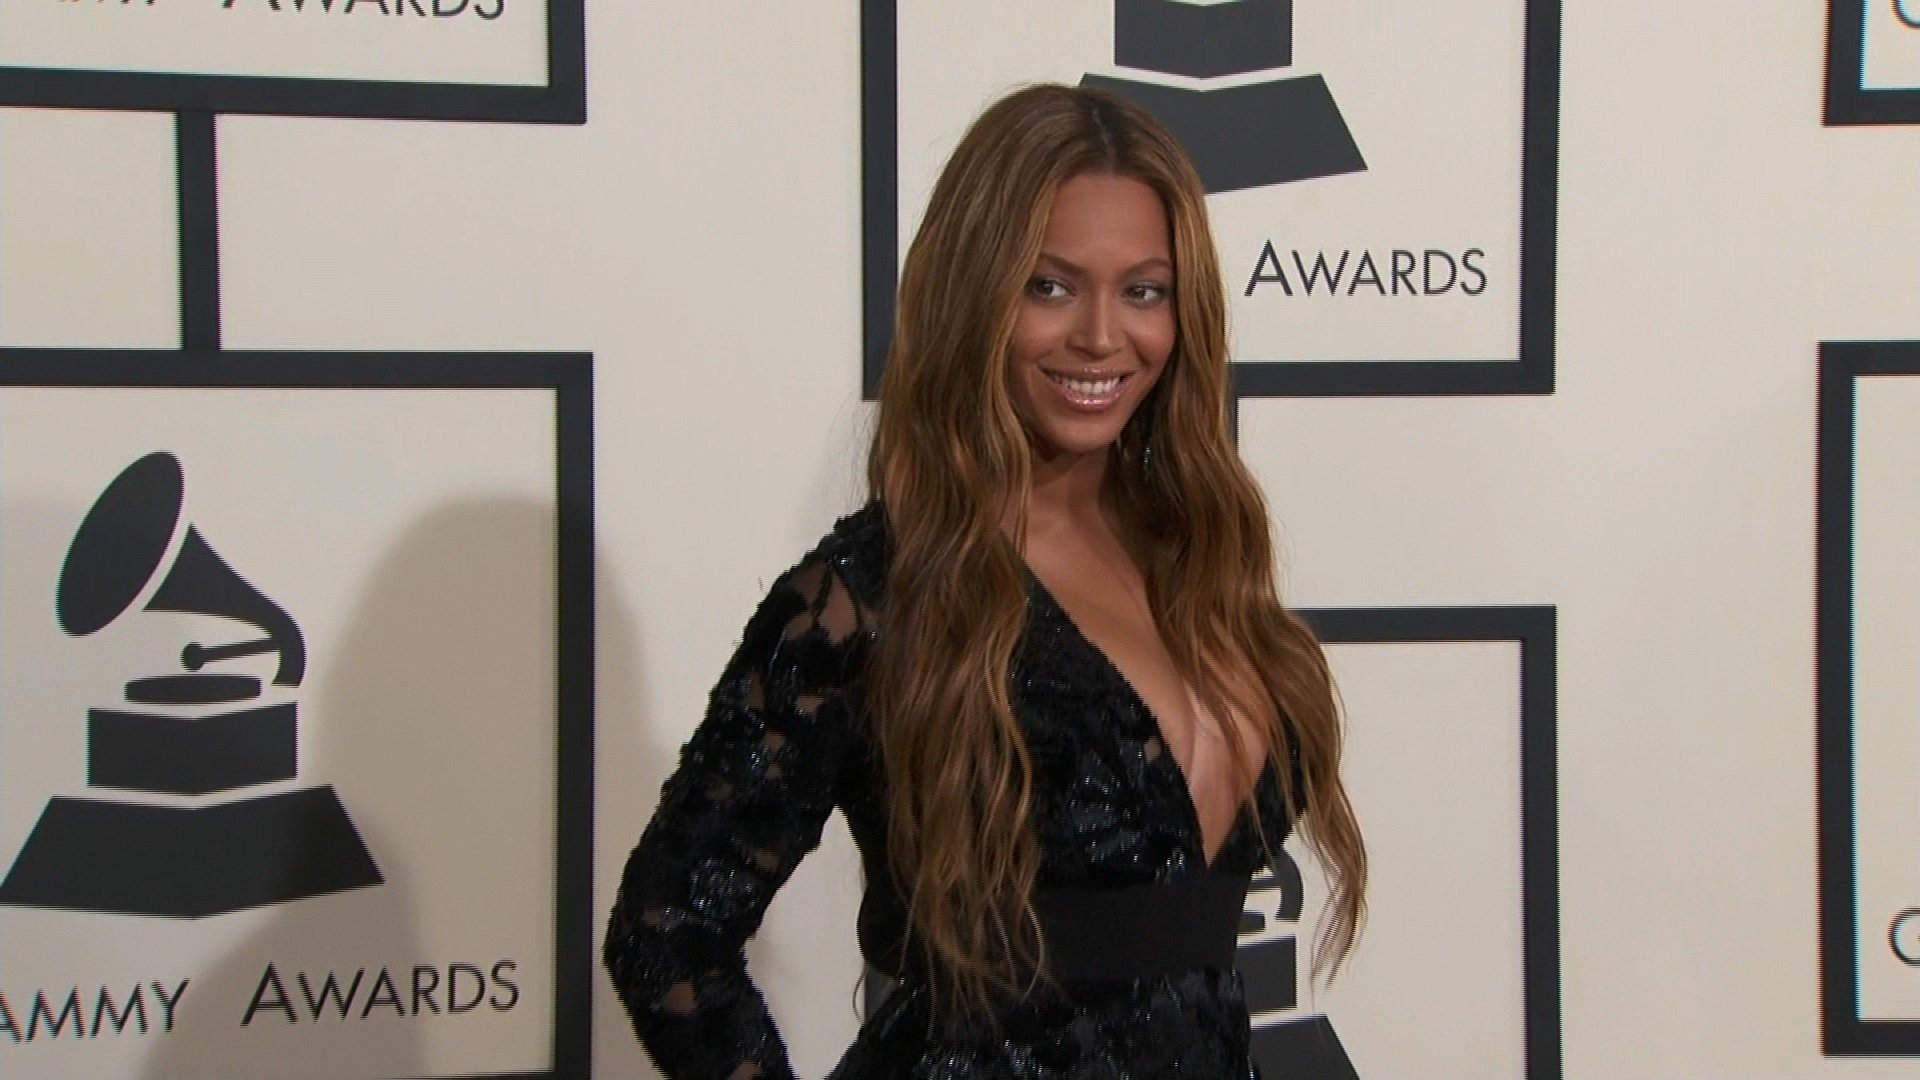 Beyonce on the red carpet at the 57th Annual GRAMMY Awards in Los Angeles on Sunday, February 8, 2015.